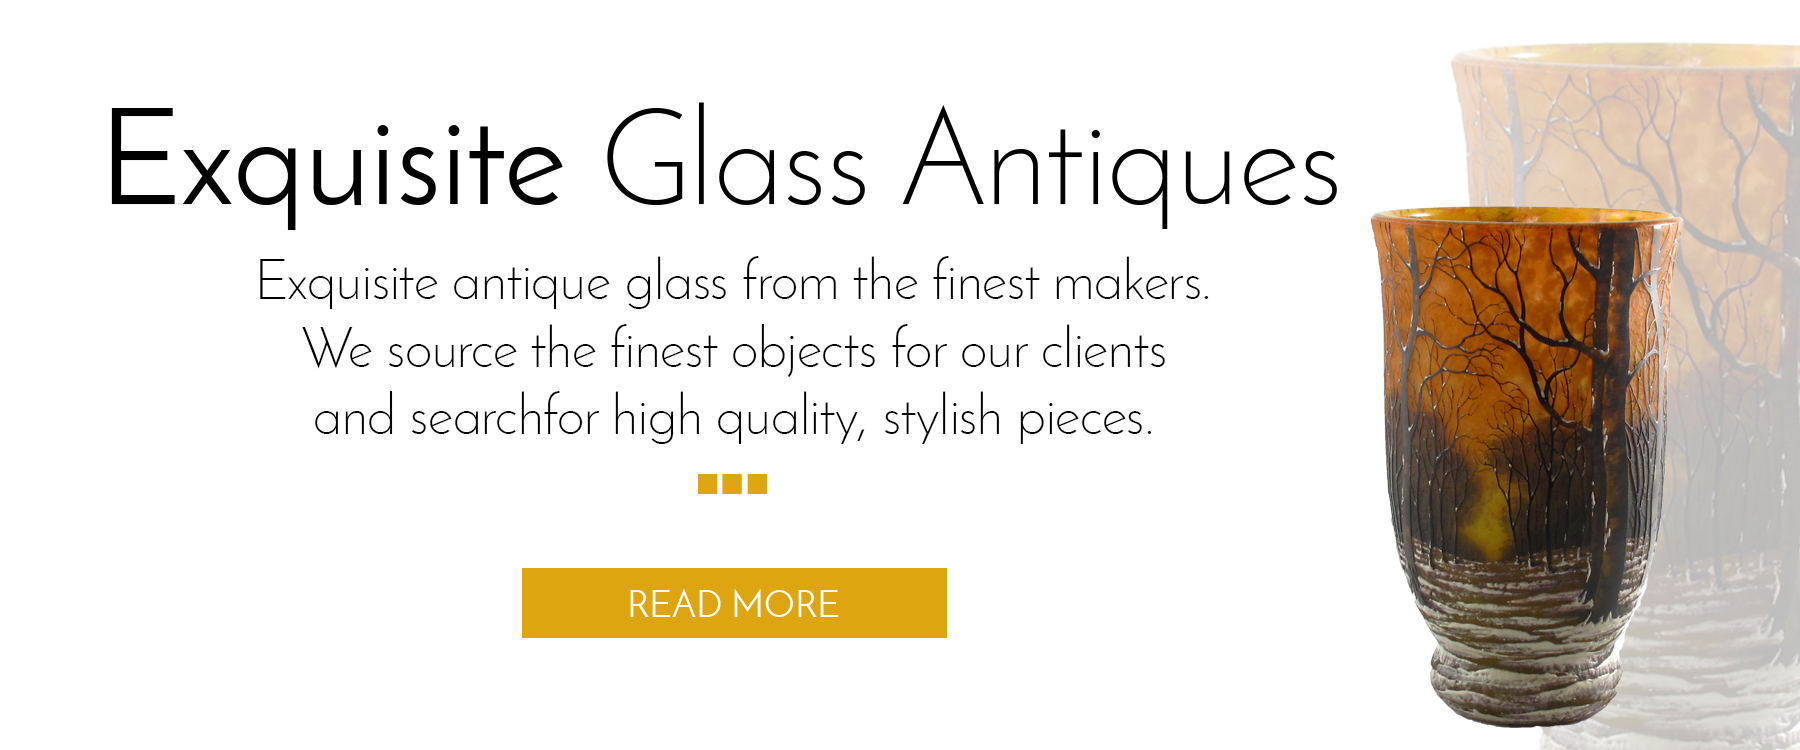 Glass antiques